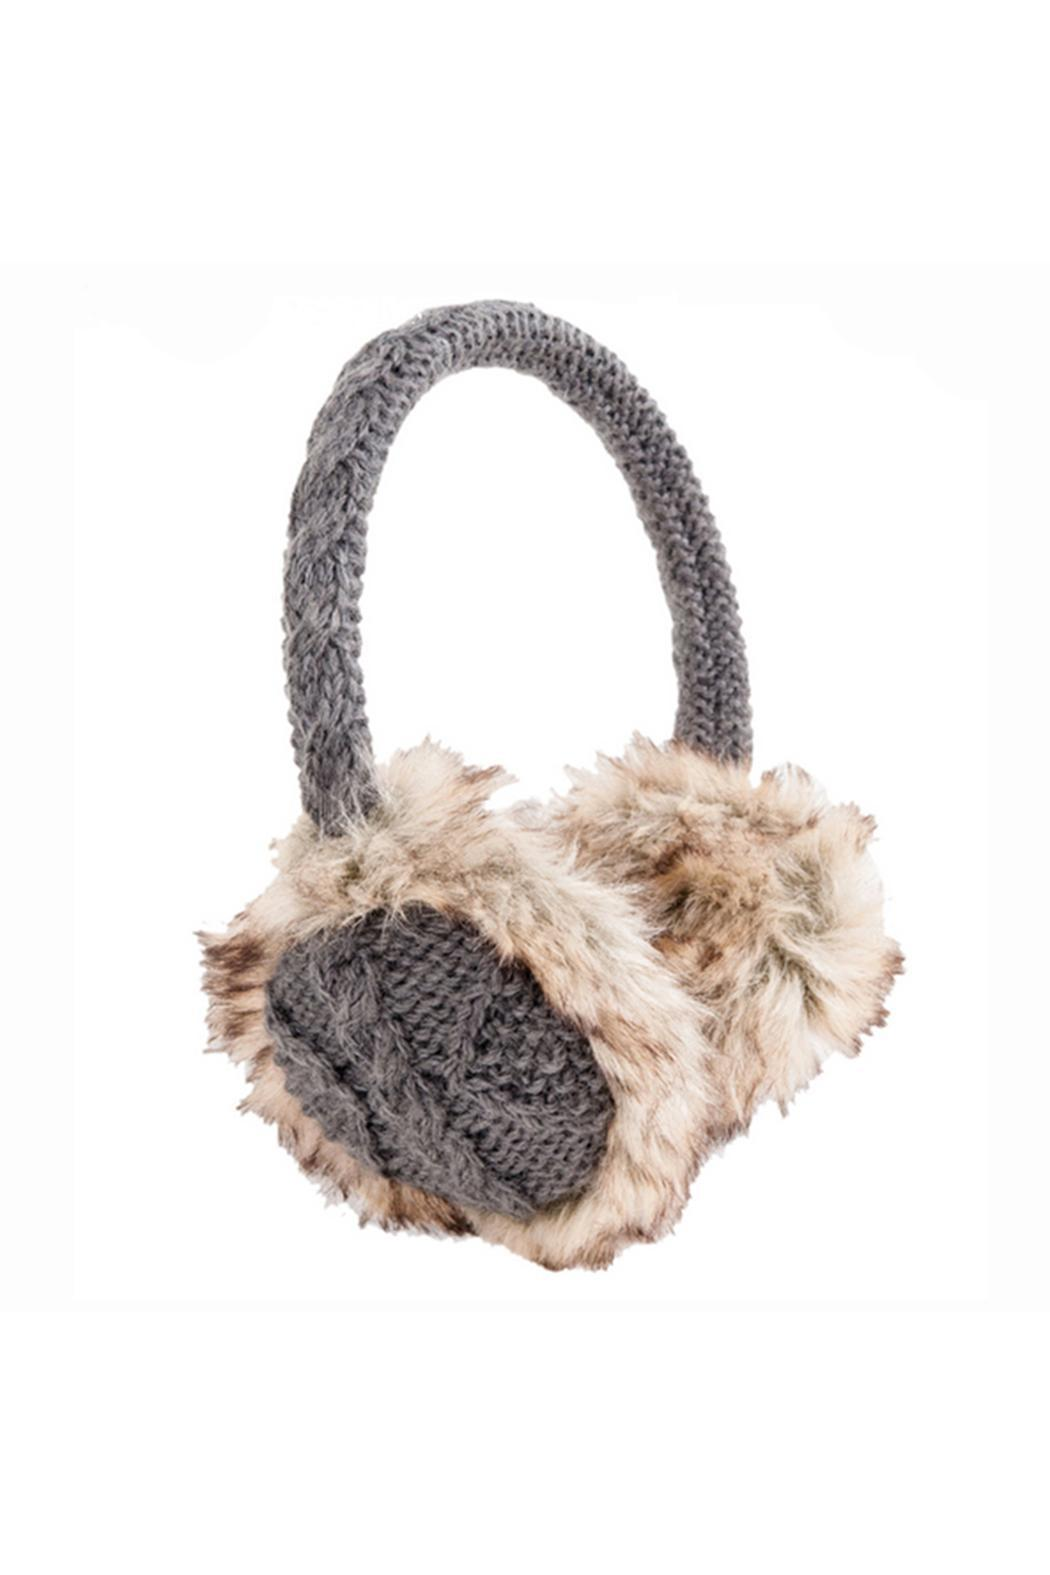 Apartminty Fresh Picks: Warm and Fuzzy | Cable Knit Earmuffs